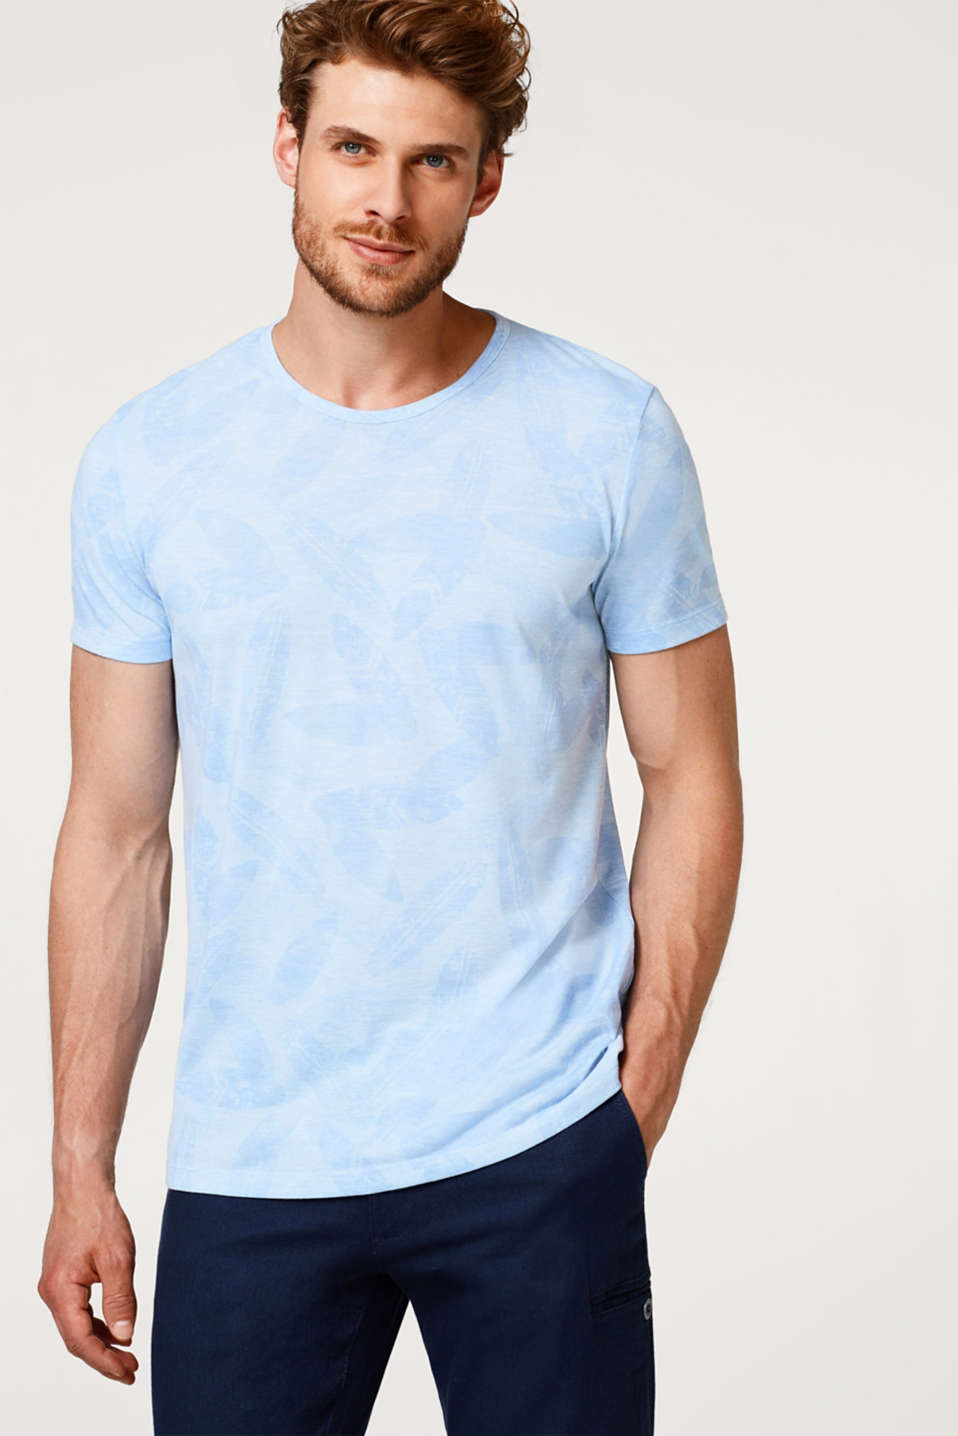 Esprit - Melange jersey T-shirt with a tropical pattern